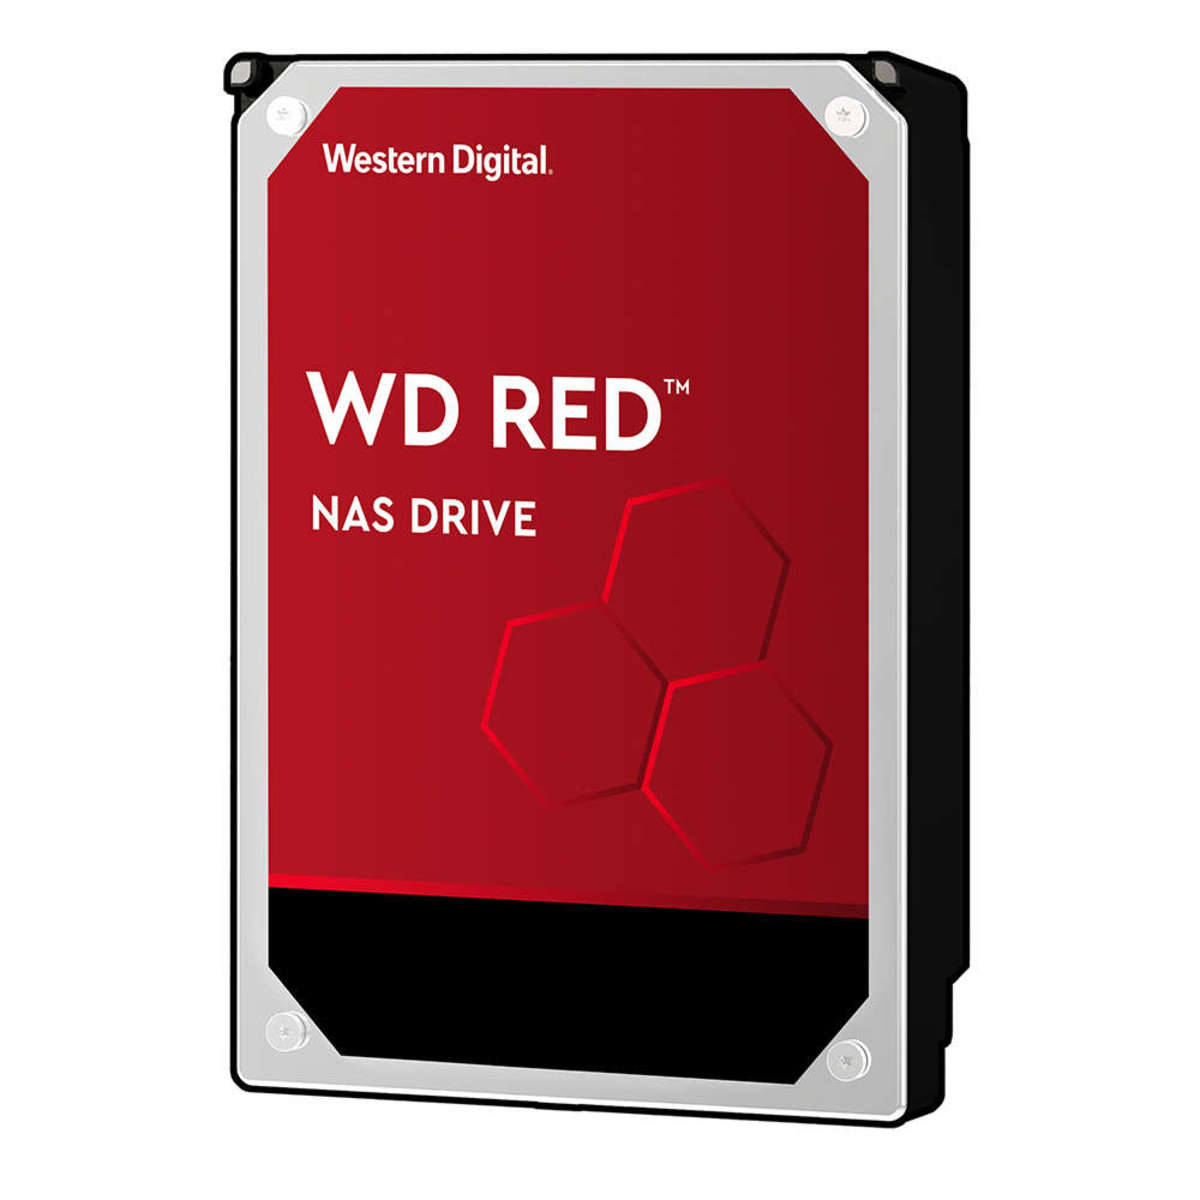 WD RED NAS HARD DRIVE 8TB